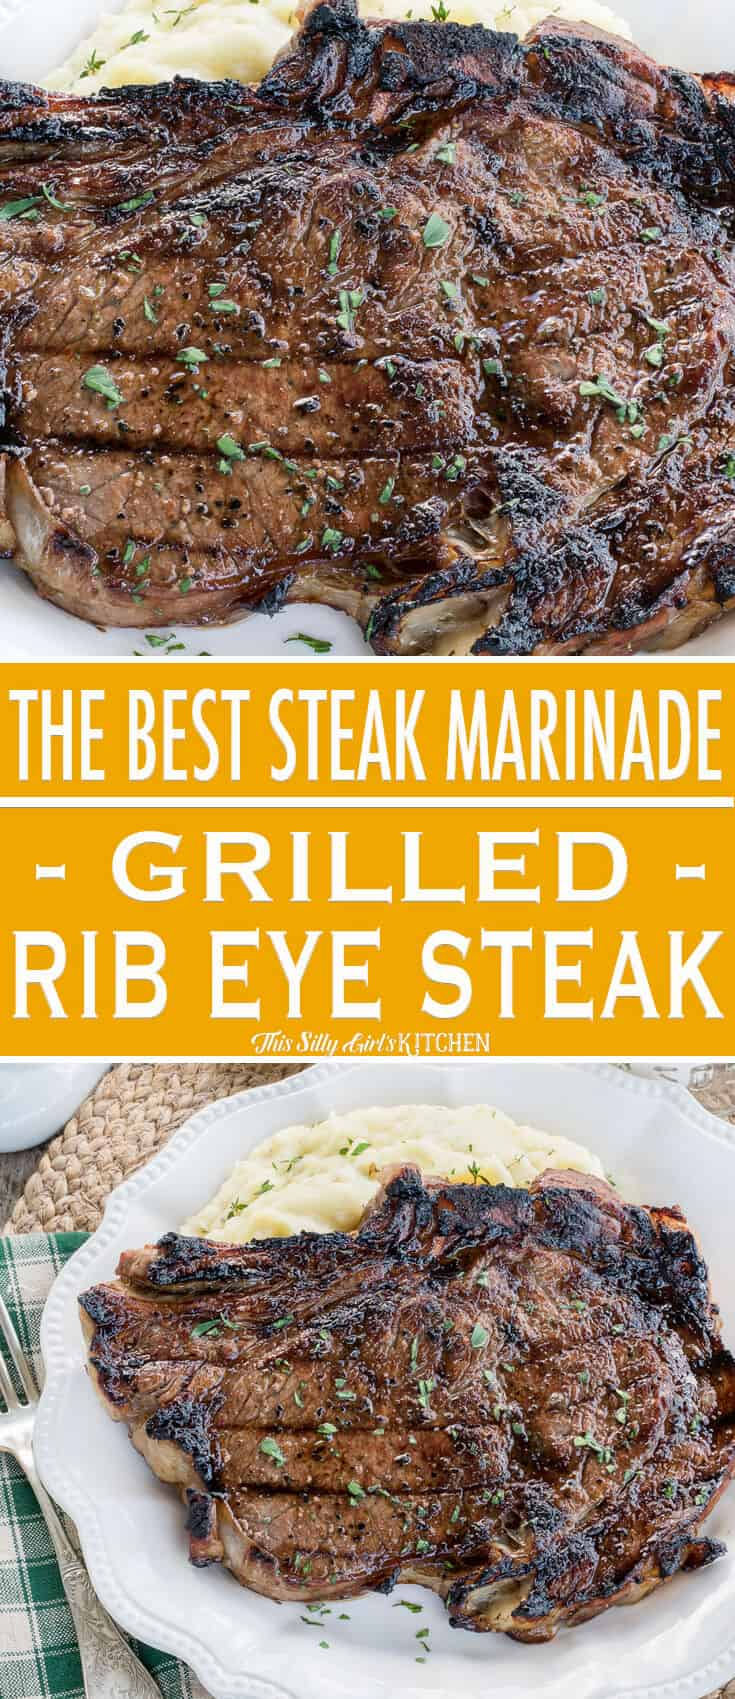 Grilled Rib Eye Steaks, marinated and grilled to perfection, you will make this recipe again and again! #Recipe from ThisSillyGirlsKitchen.com #ribeyesteak #steakmarinade #grilling